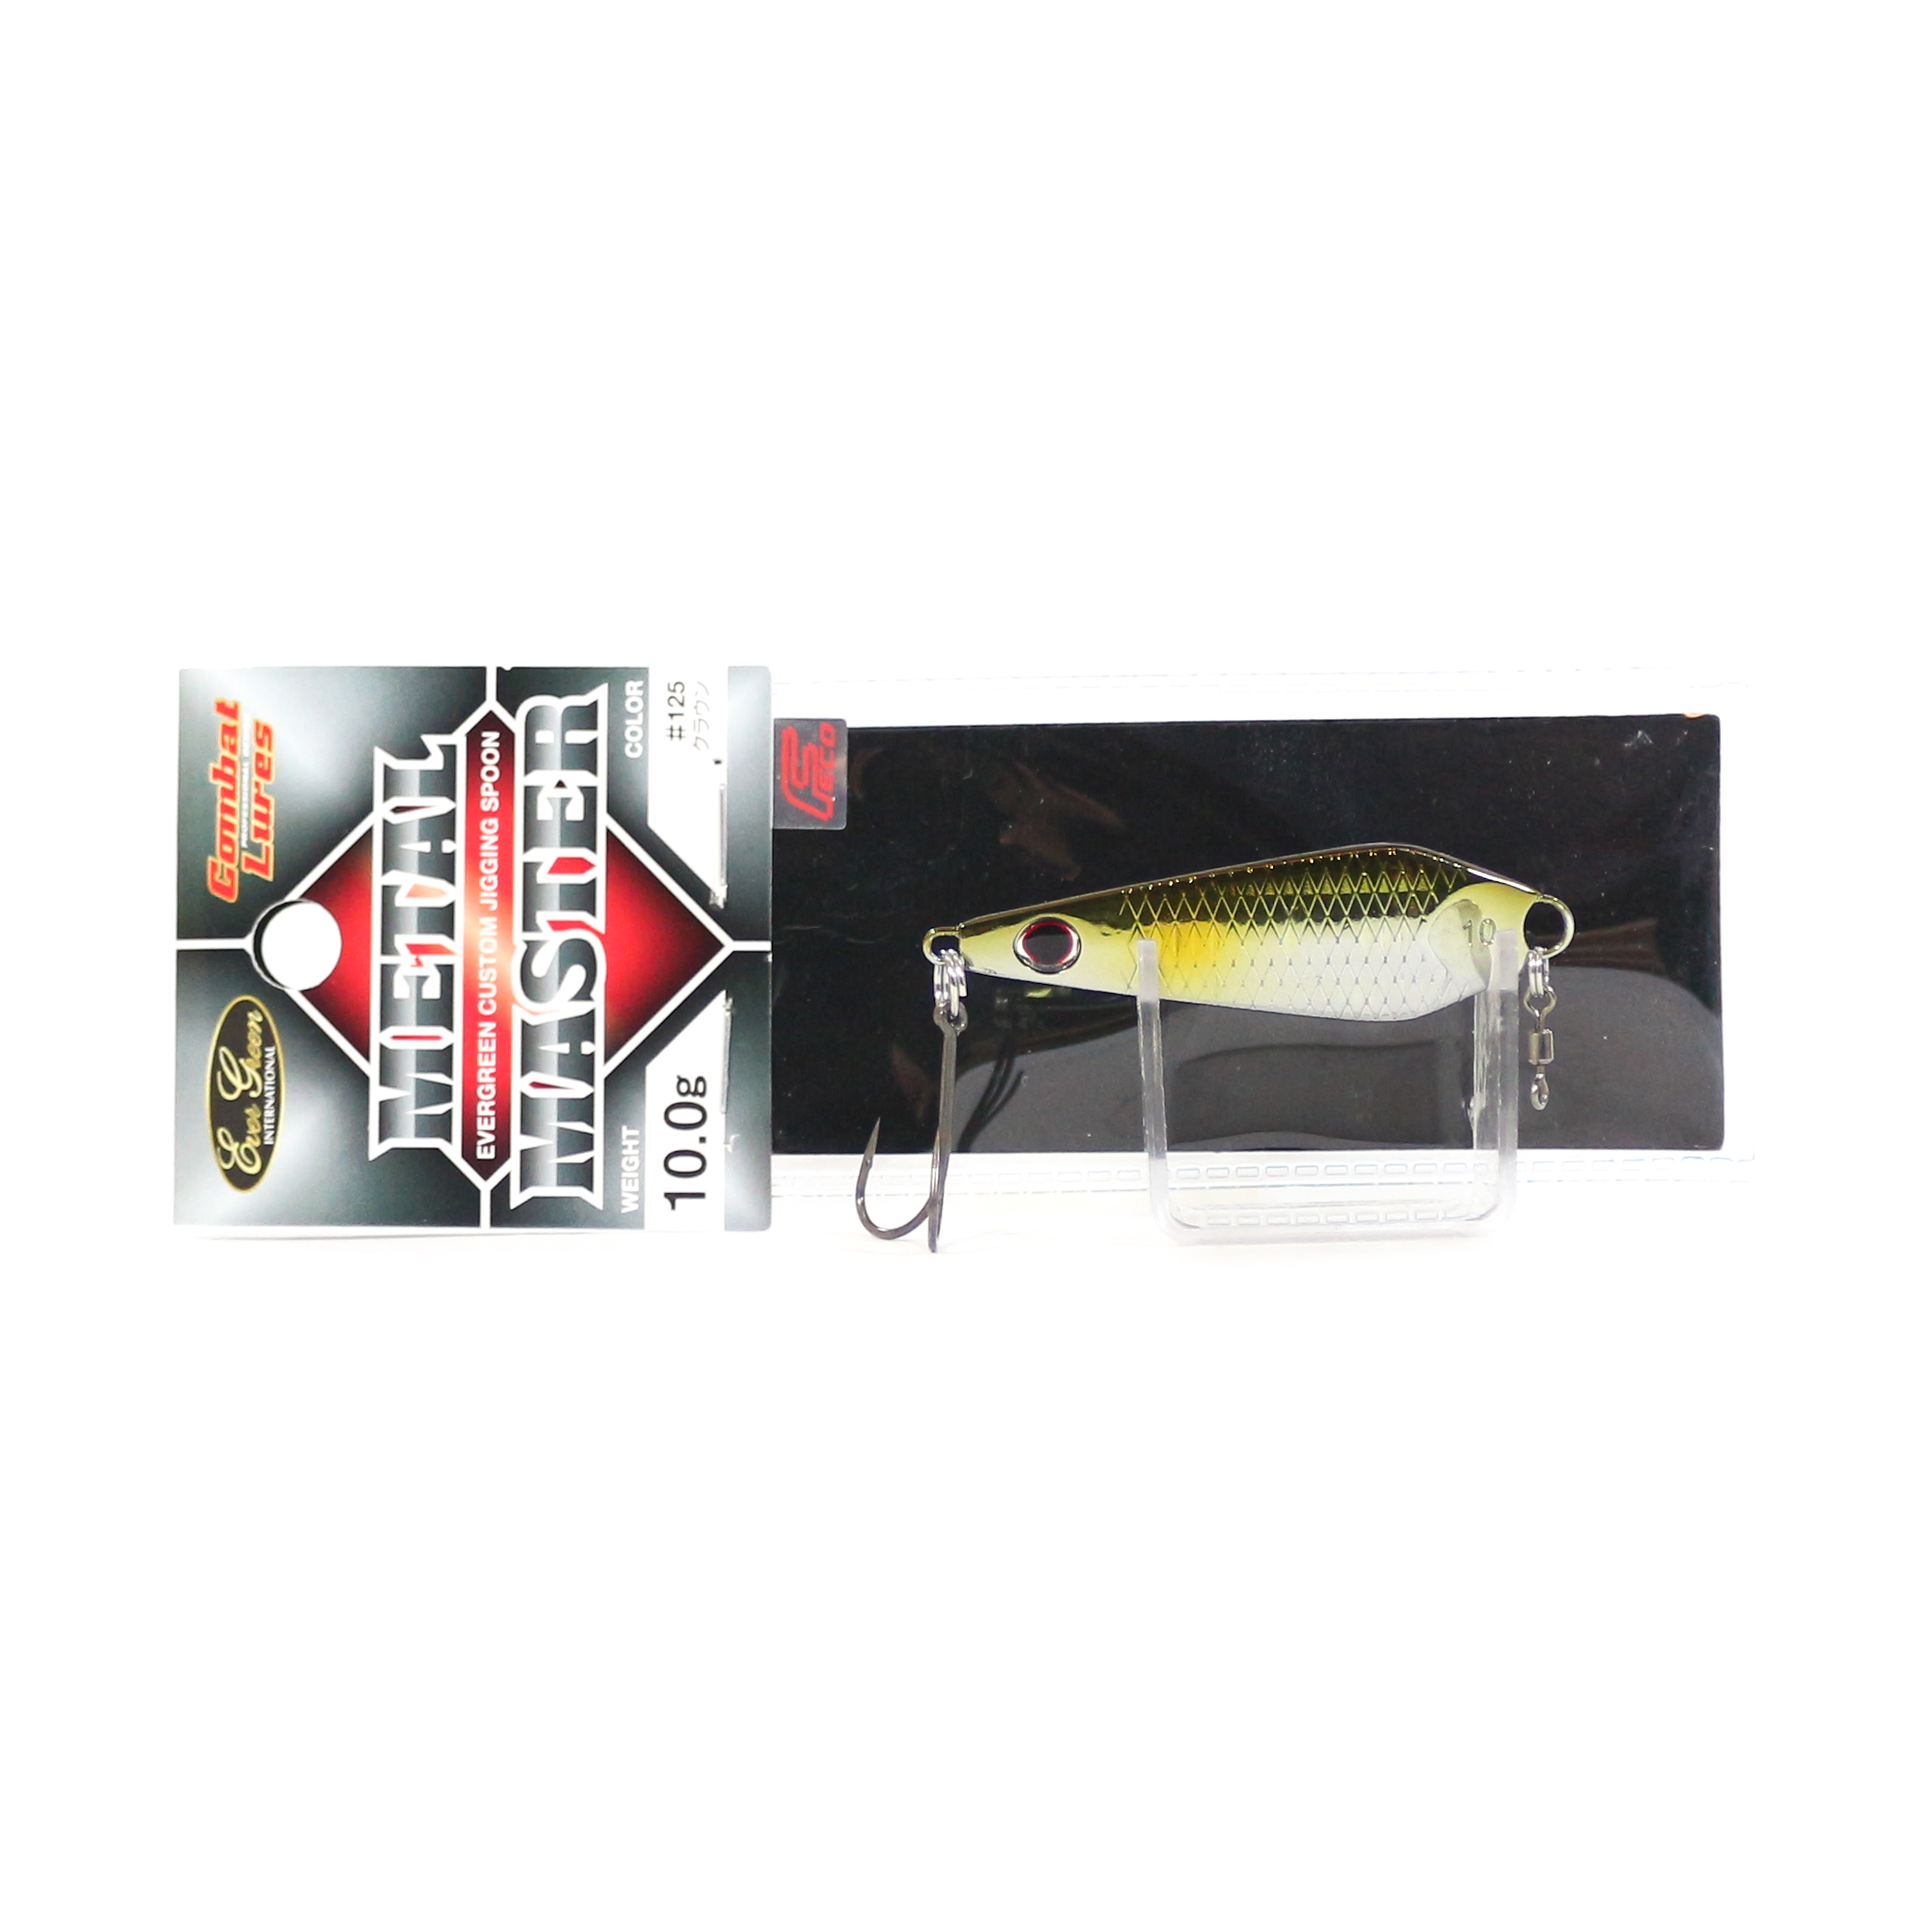 Evergreen Metal Master Custom Jigging Spoon 10 grams 31 (5973)